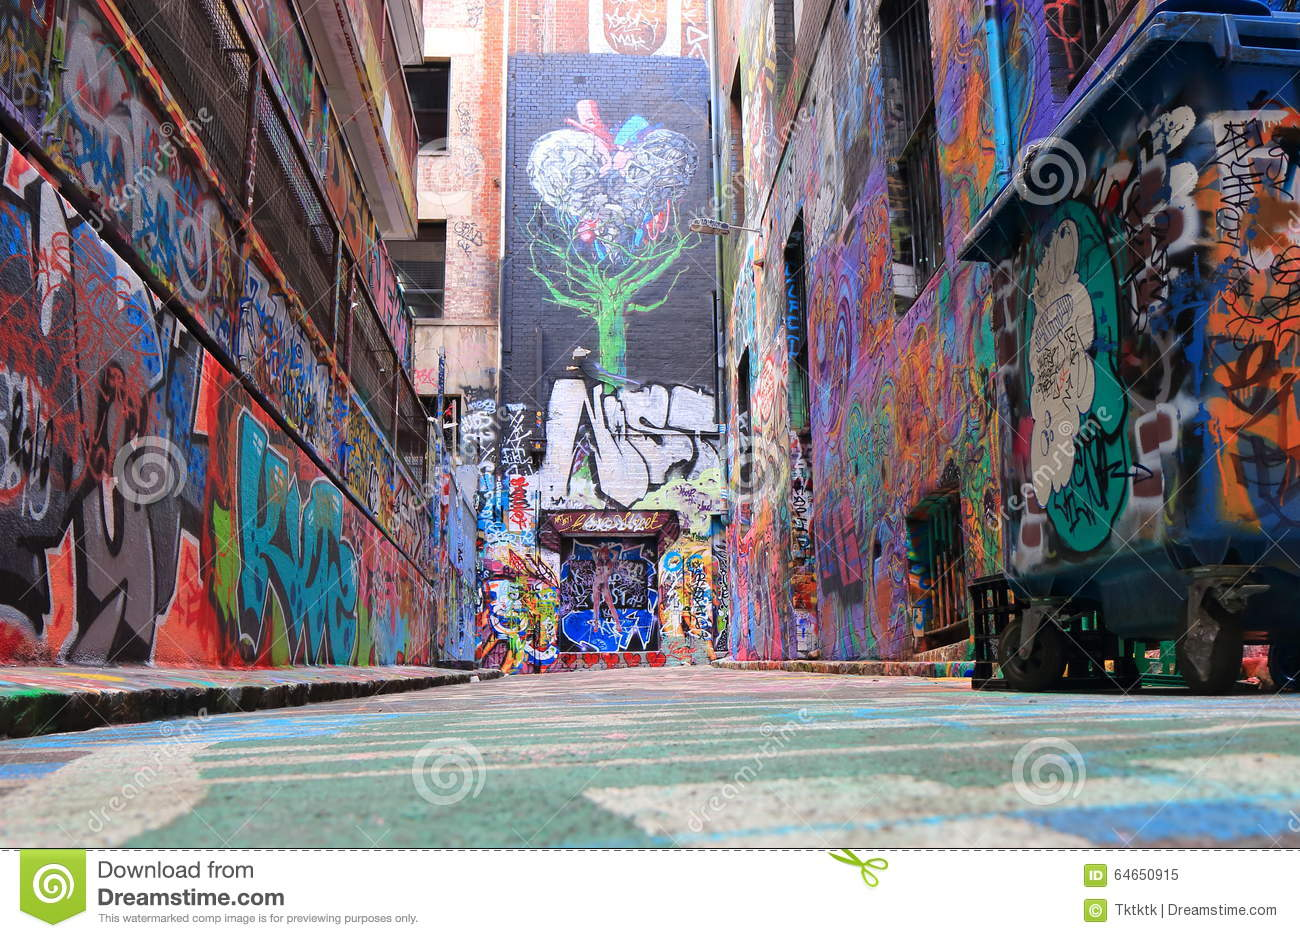 Graffiti art for sale melbourne - Art Graffiti Hosier Lane Melbourne